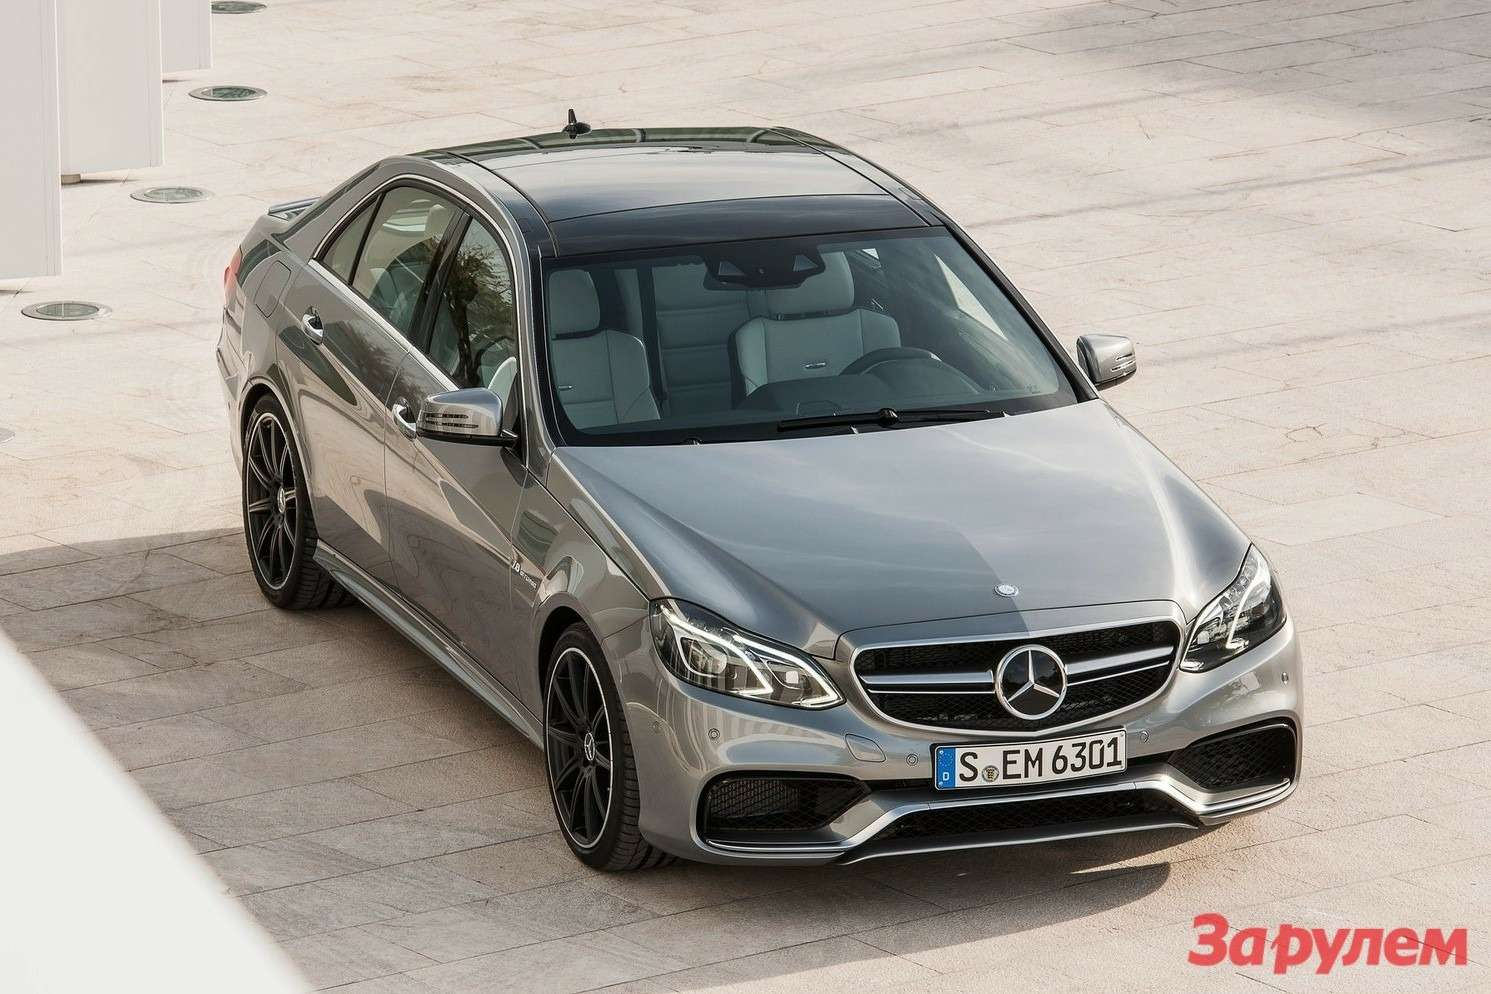 NewMercedes-Benz E63AMG side-front view